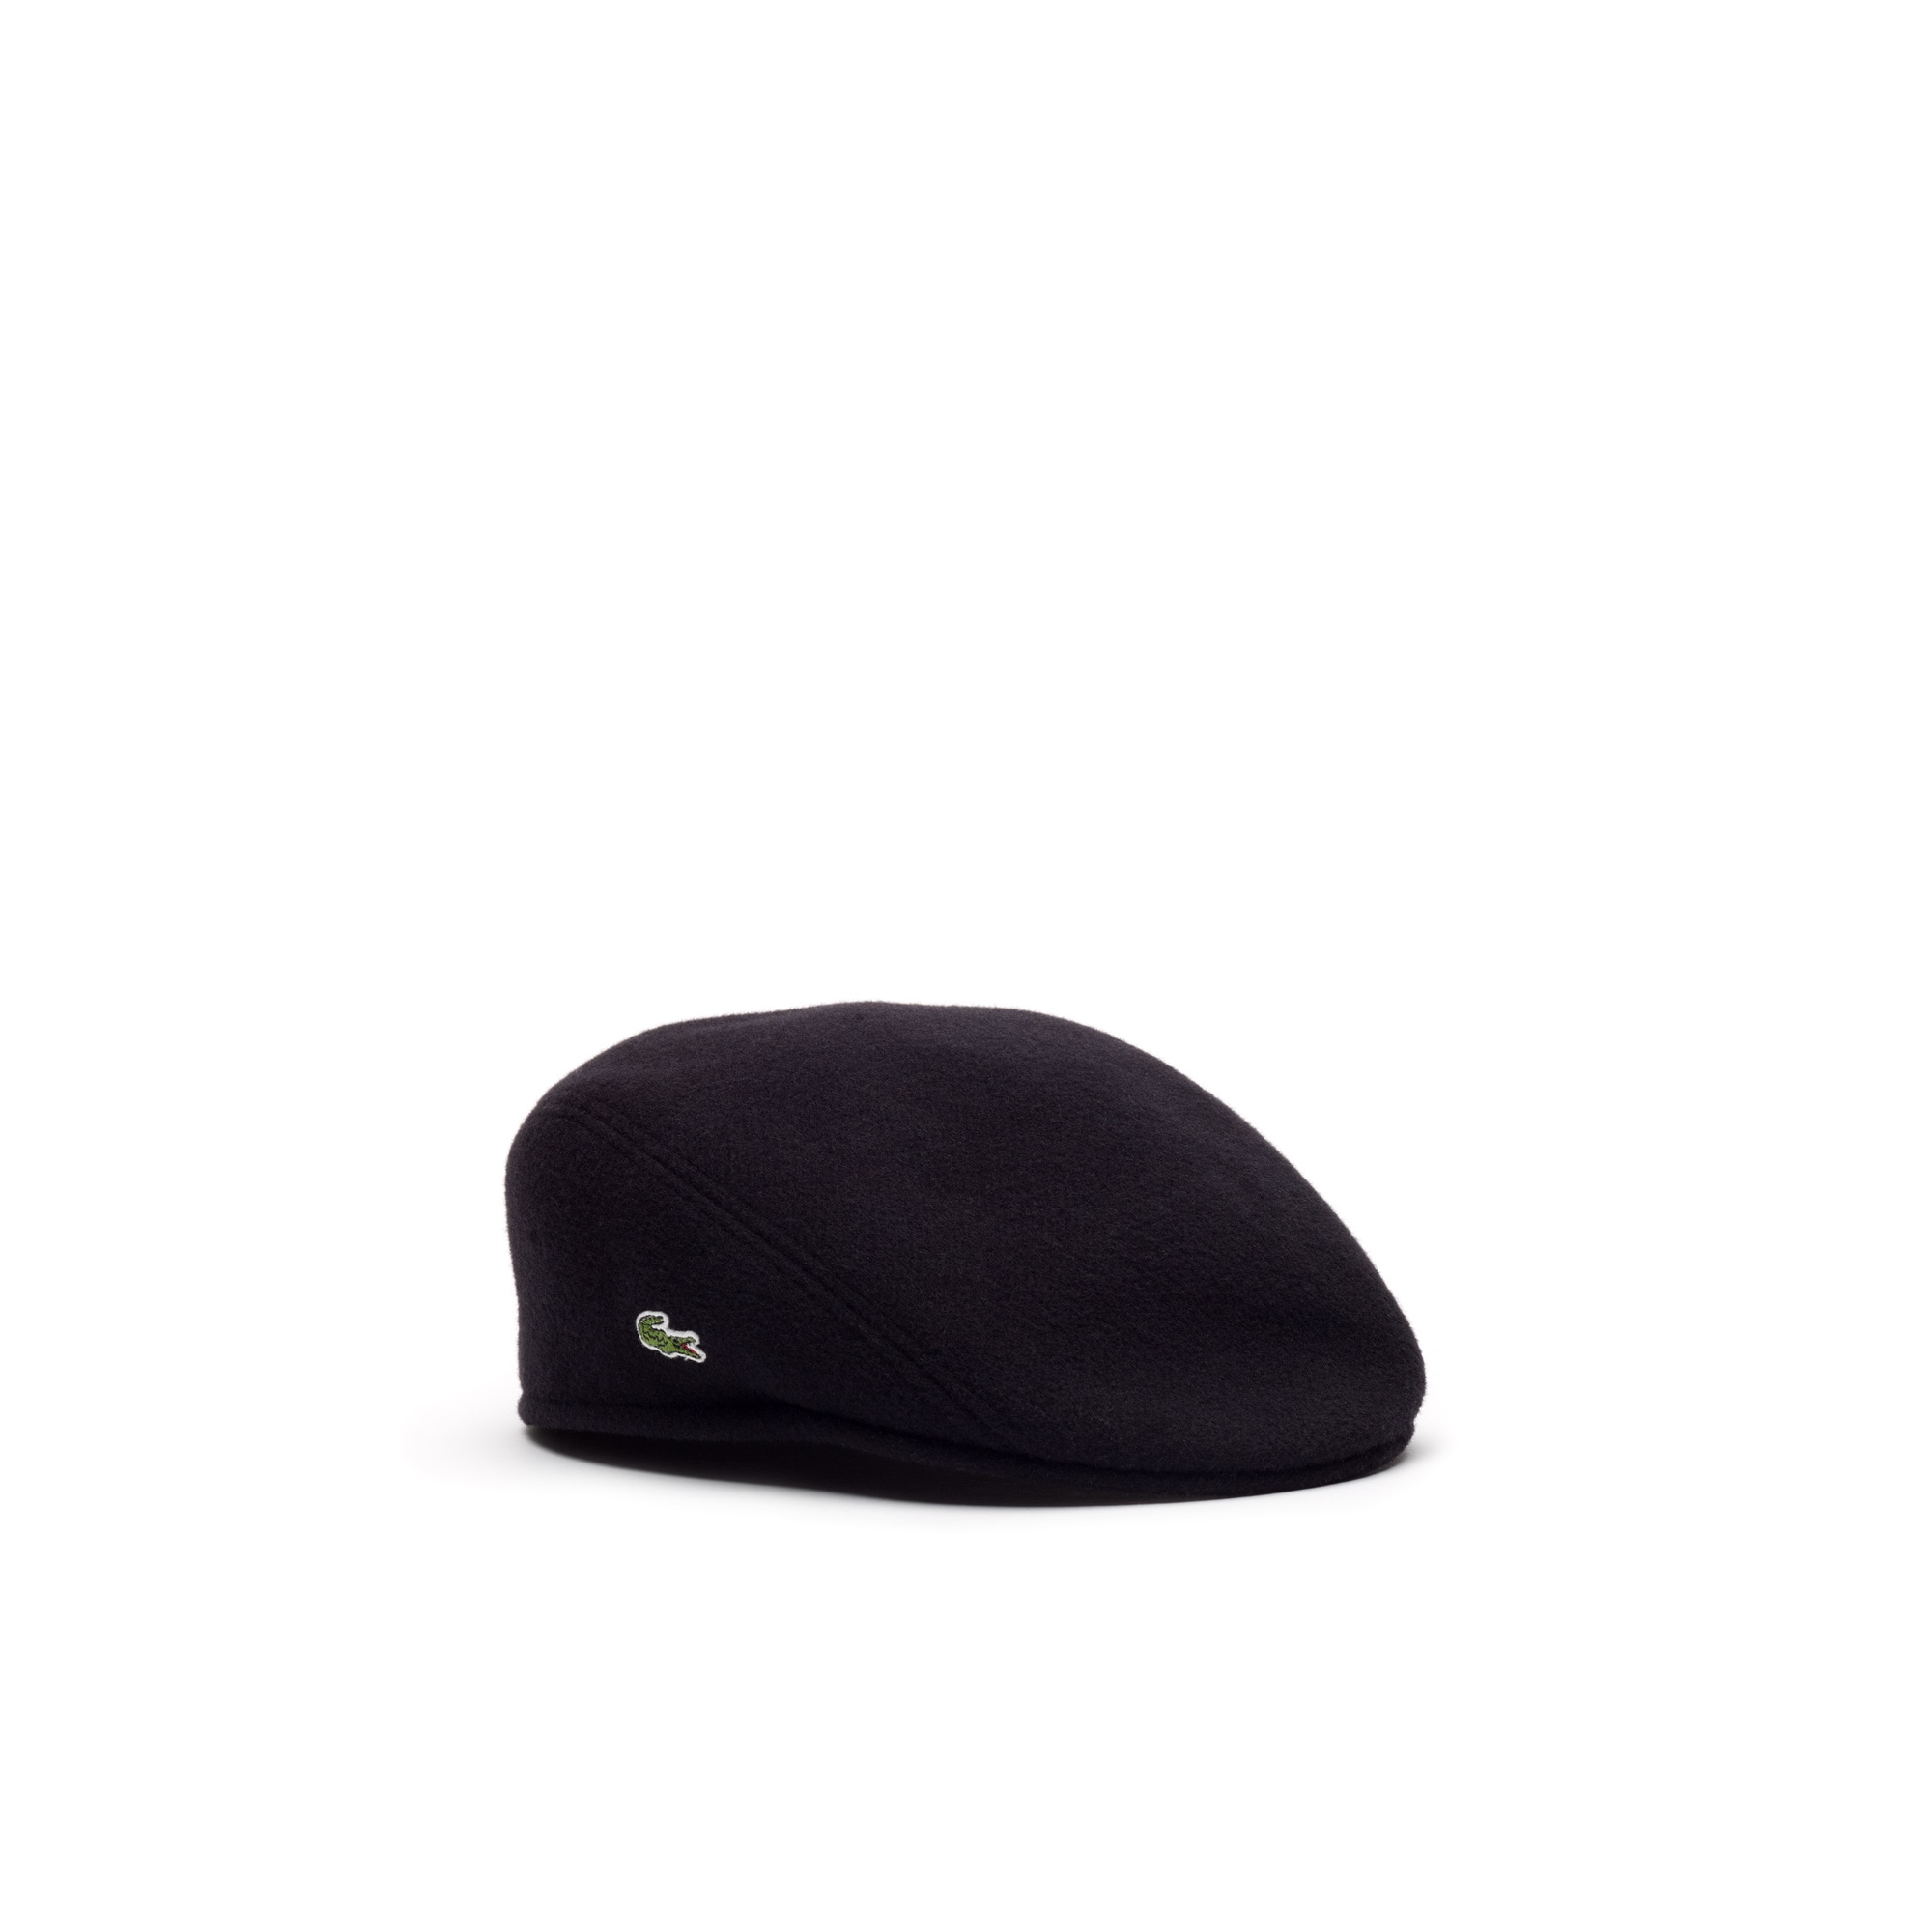 Men's Wool Broadcloth Flat Cap